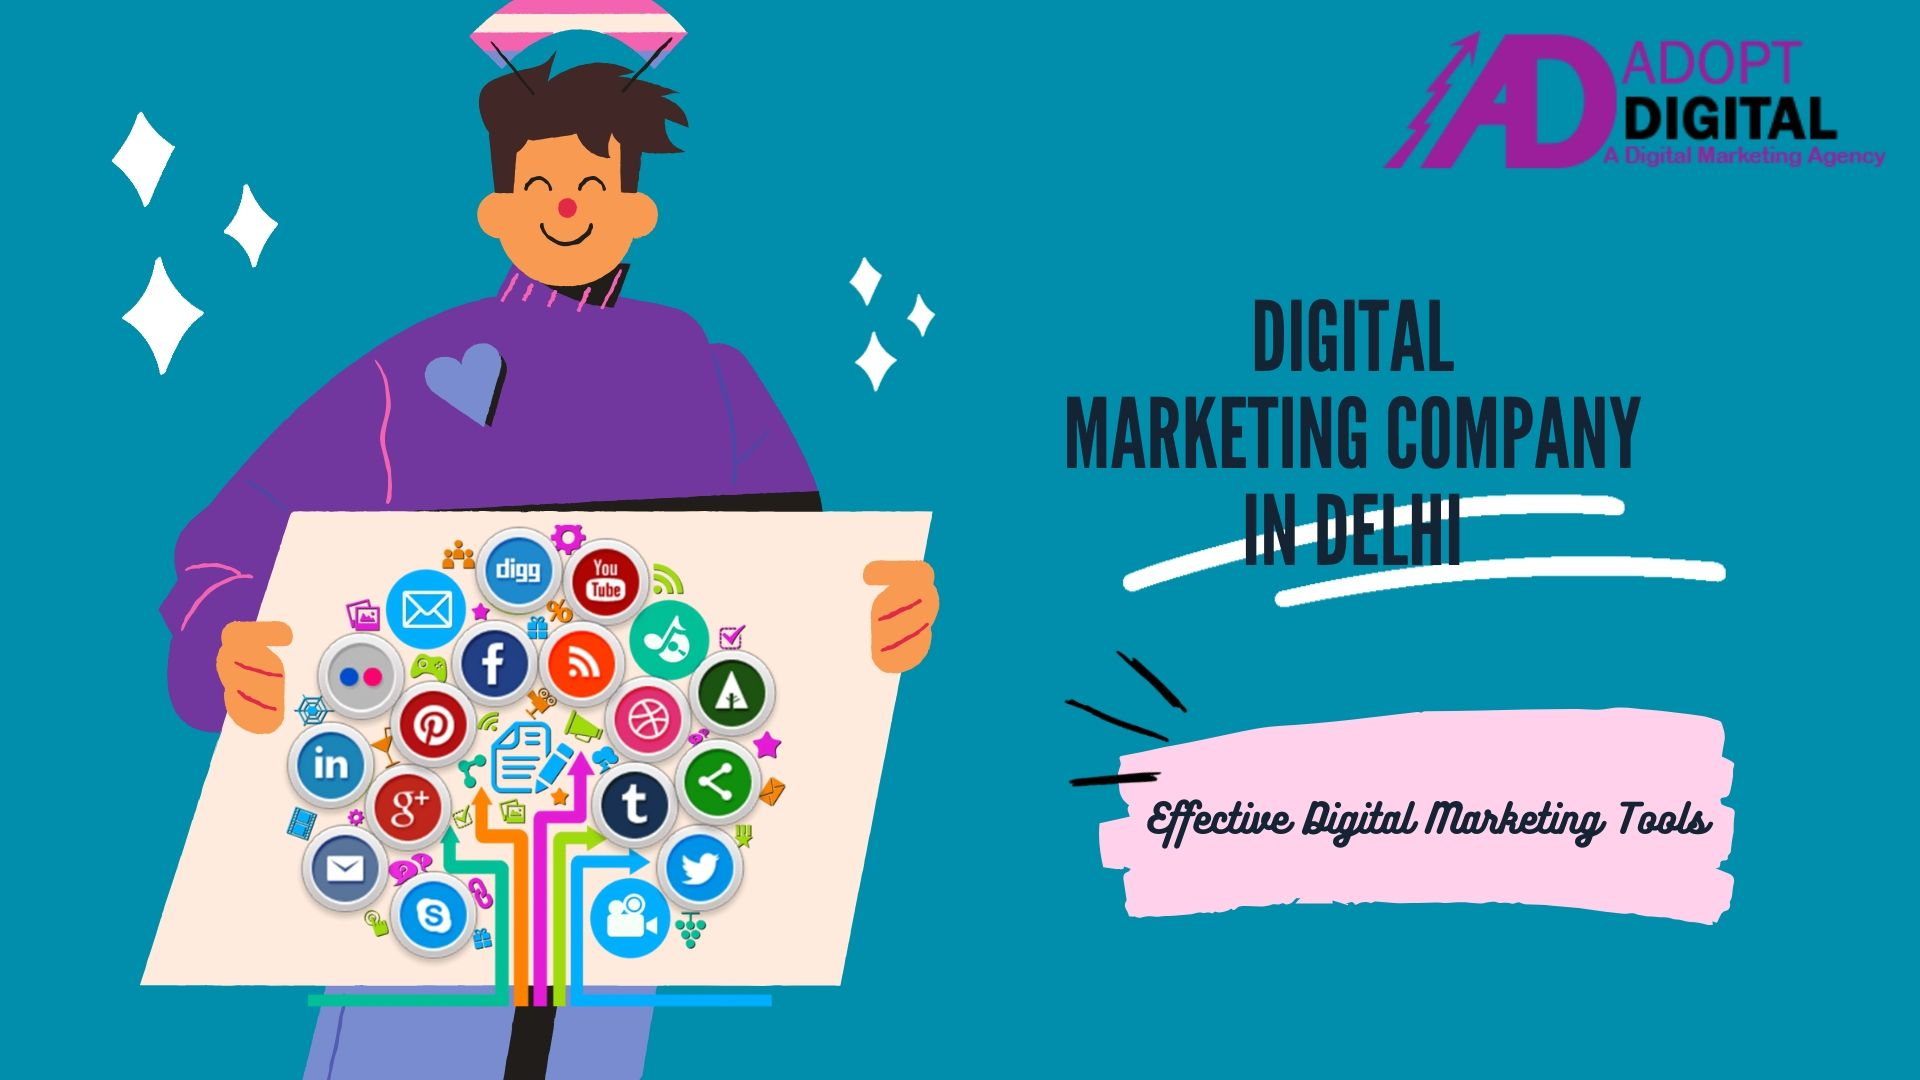 Which Stream is Beneficial for Digital Marketing?